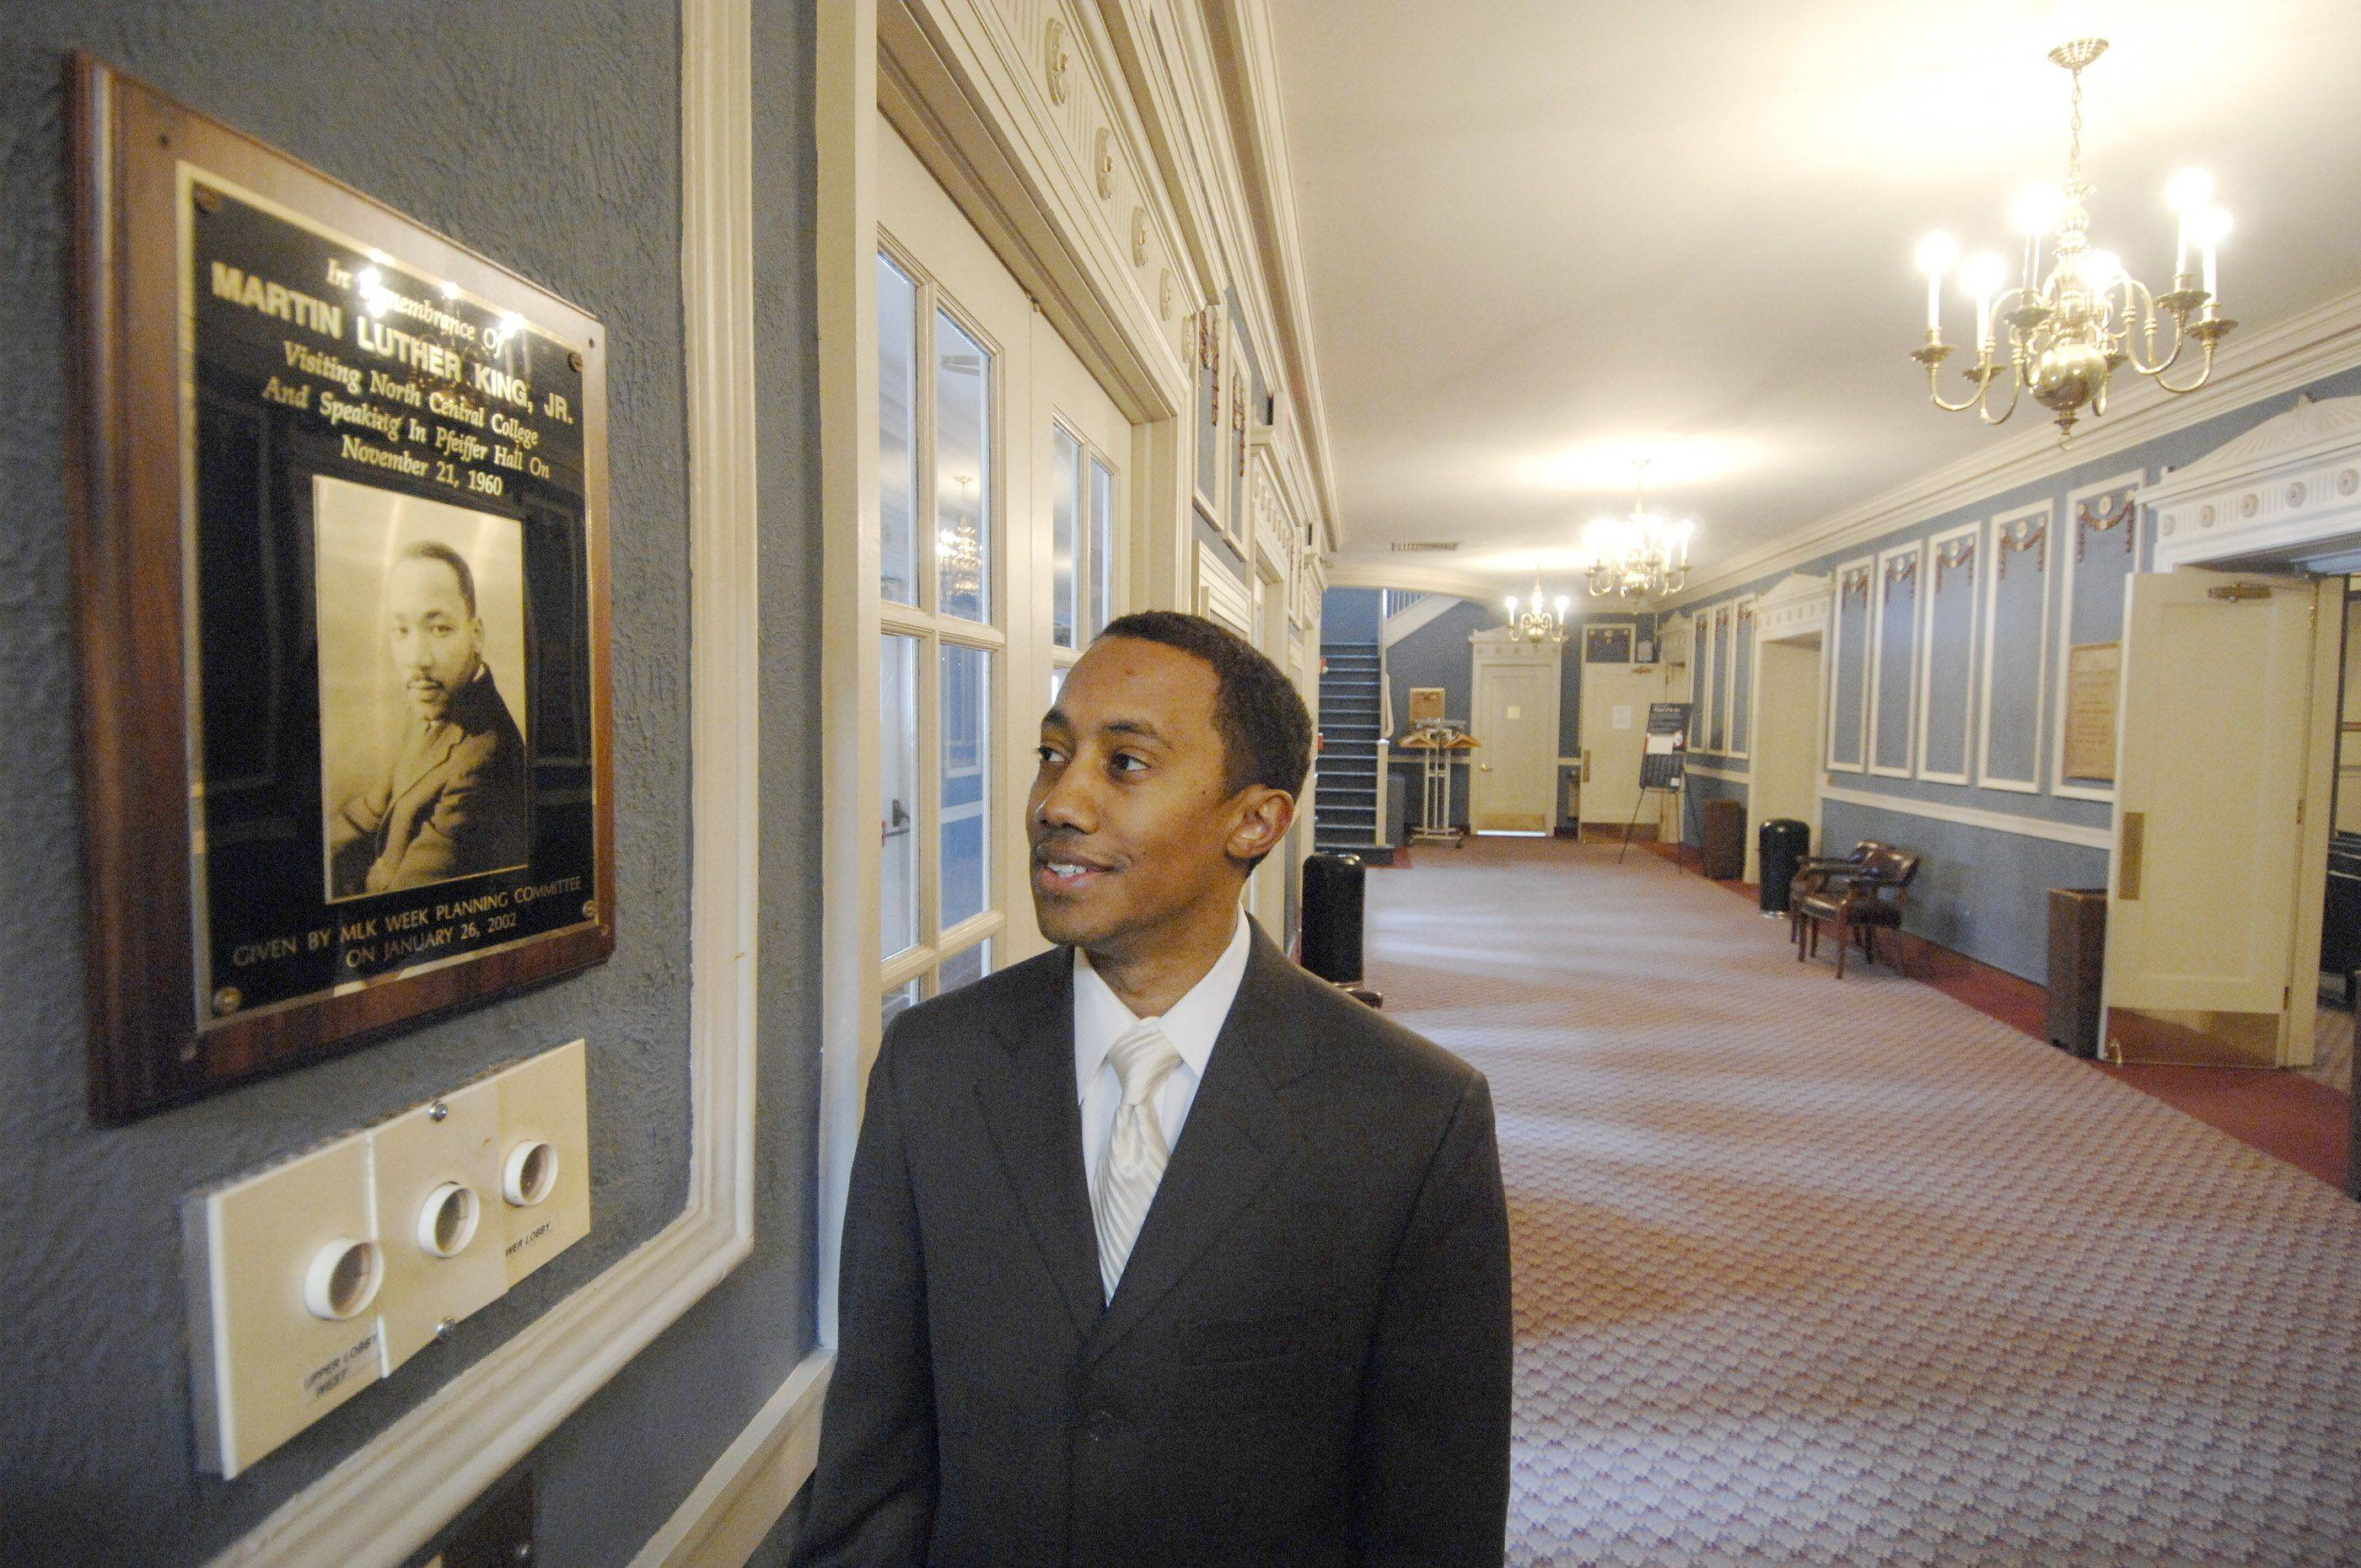 DuPage County NAACP President Mario Lambert examines a plaque of Martin Luther King displayed in the lobby of Pfeiffer Hall at North Central College in Naperville. It commemorates a speech King gave there in 1960.